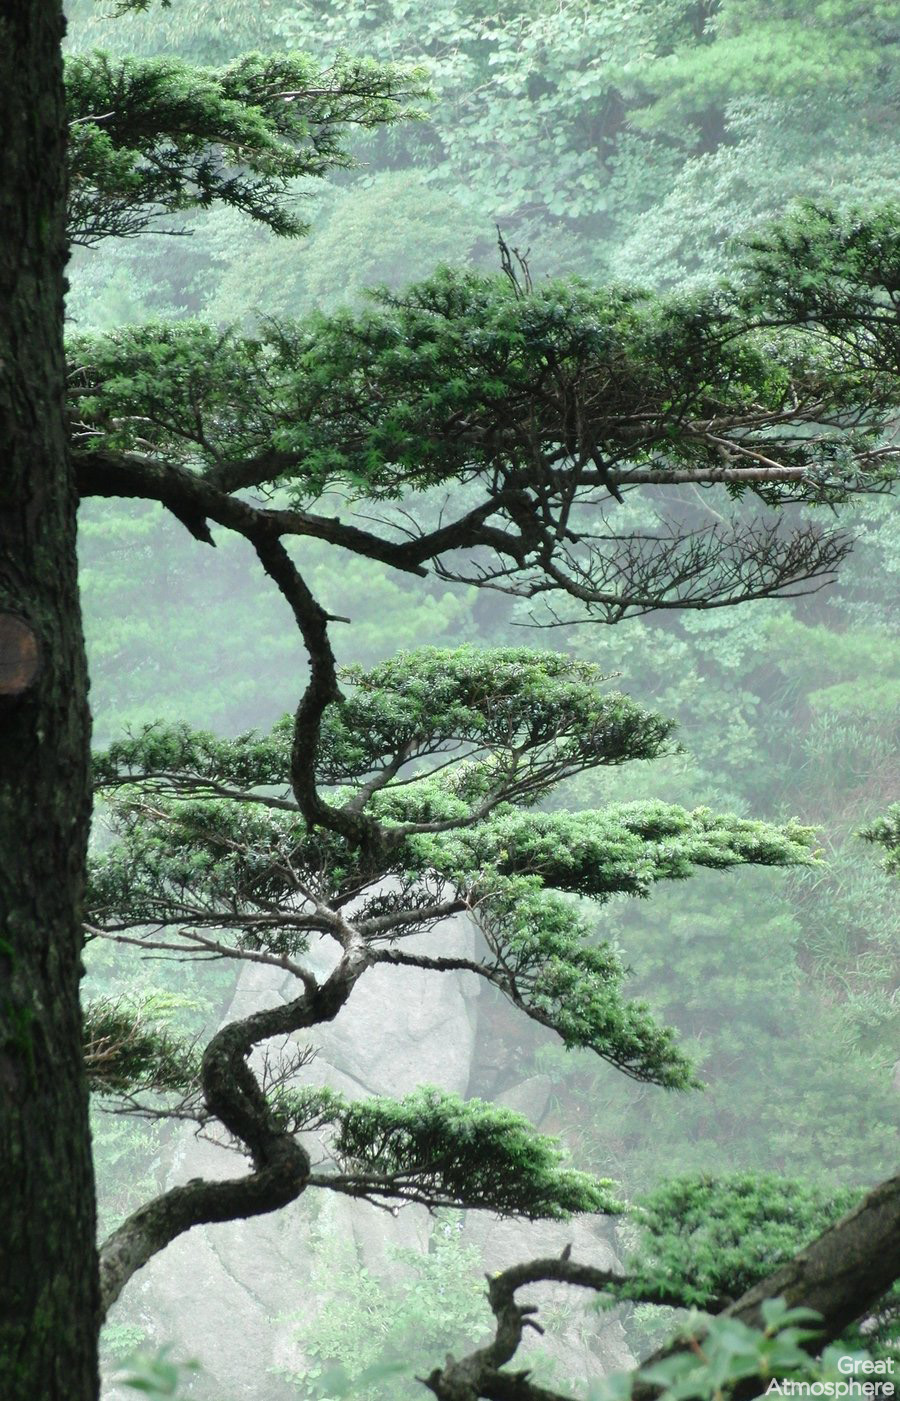 great-atmosphere-trees-china-chill-162-1